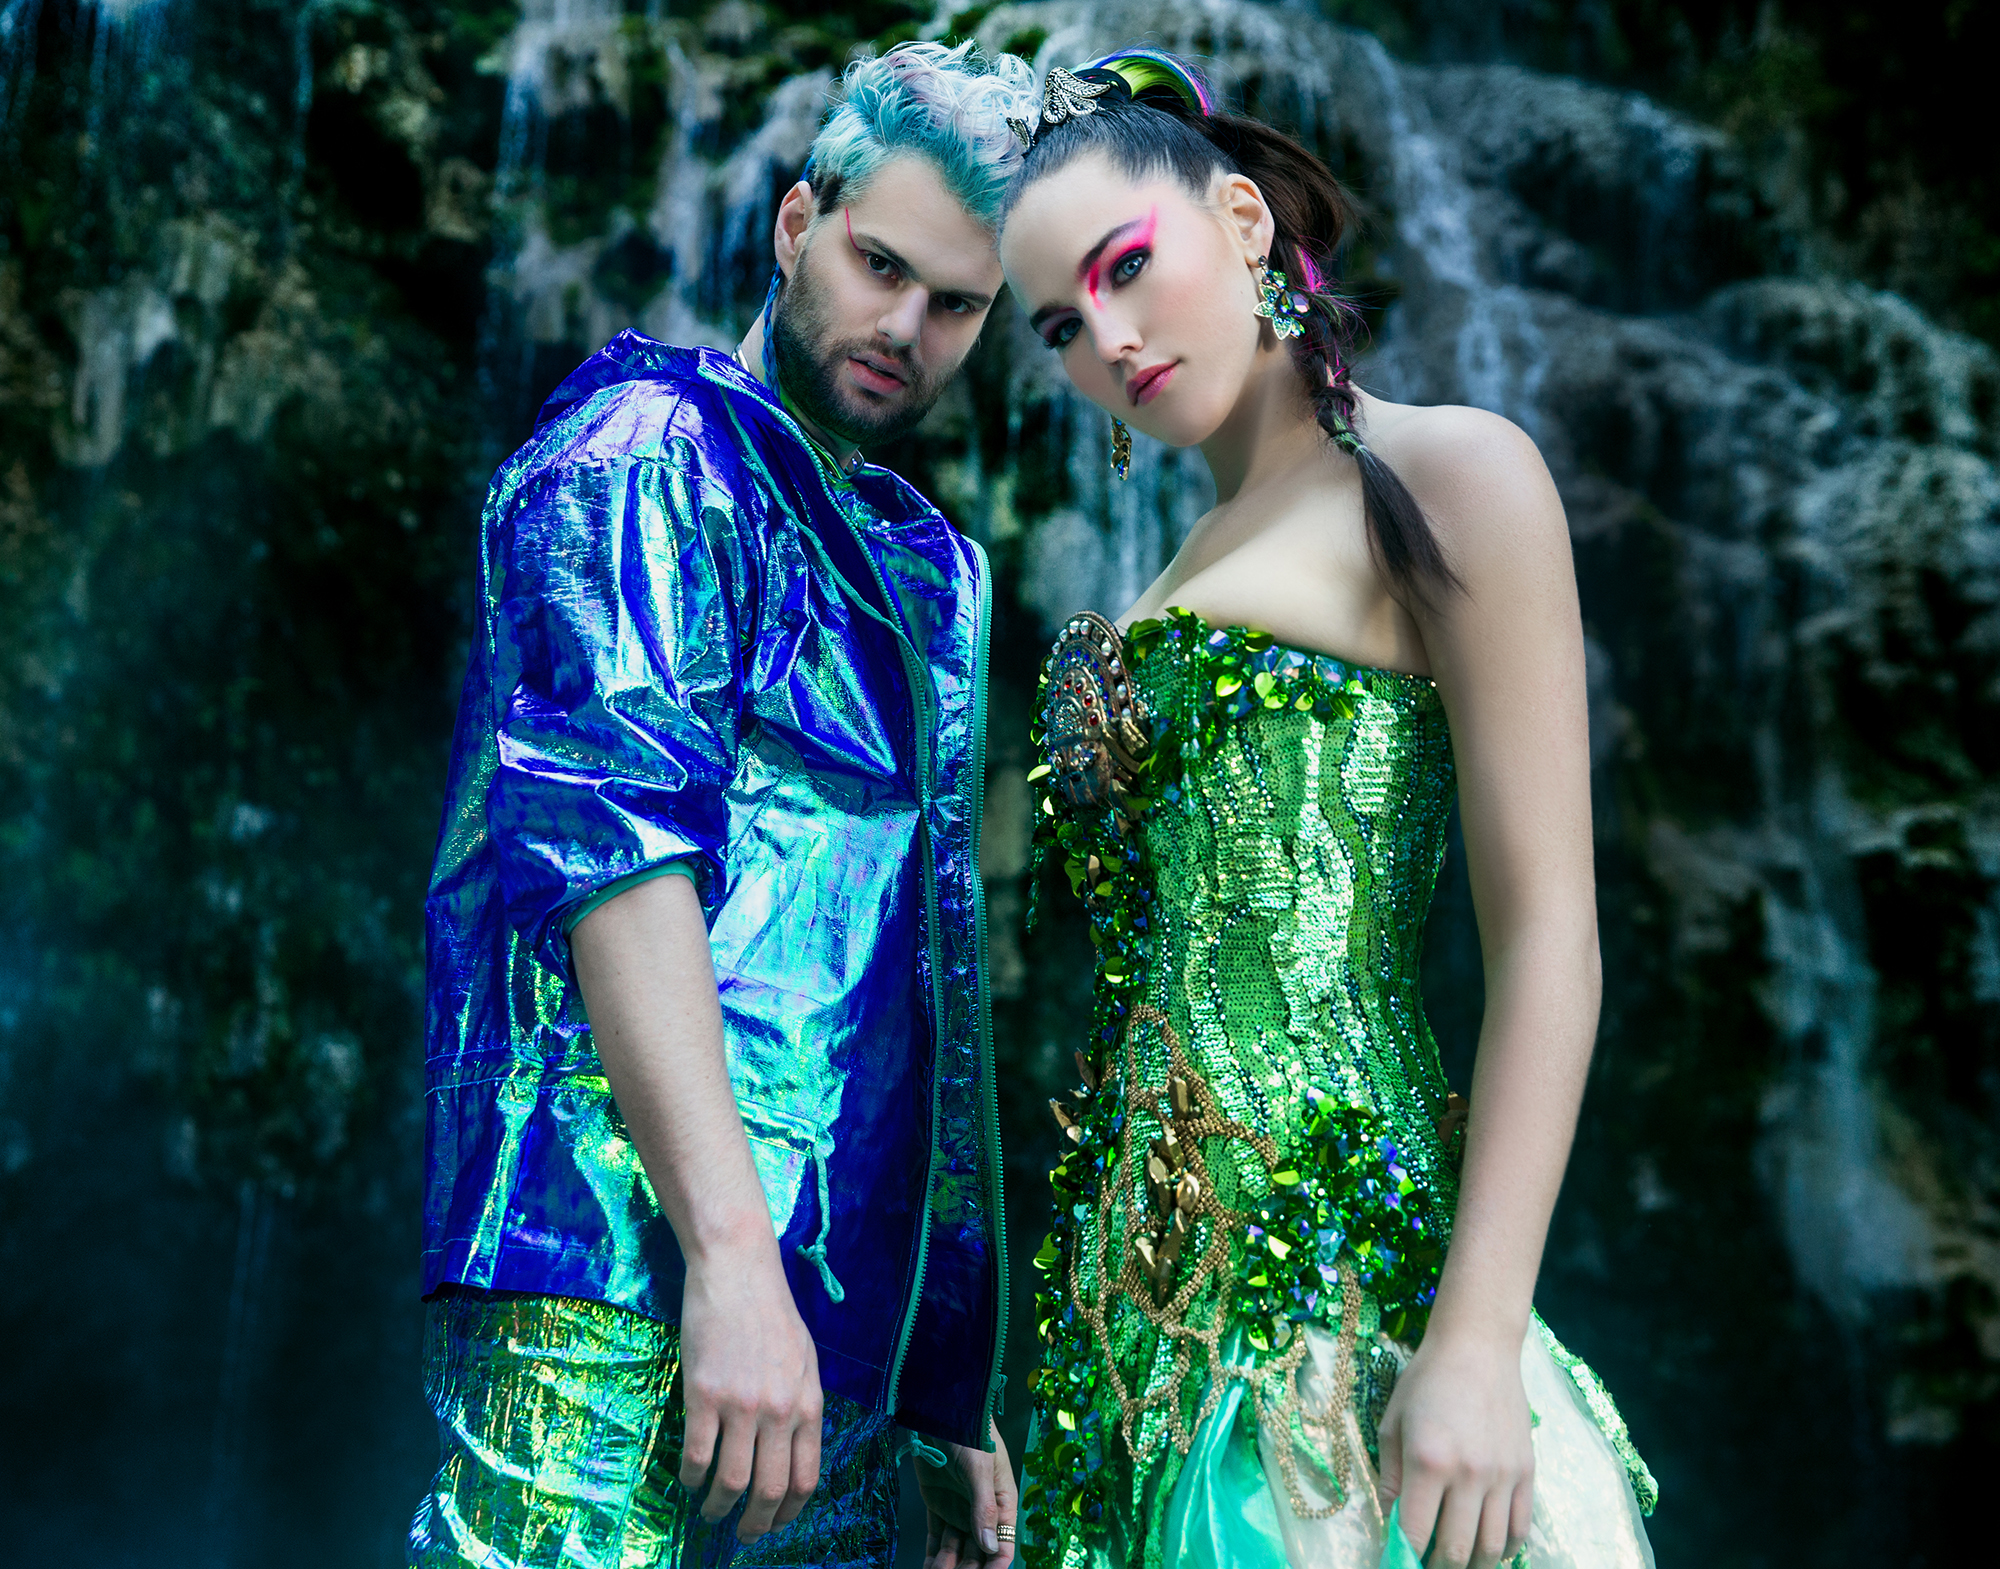 "SOFI TUKKER's success was anything but planned. The band's very existence happened haphazardly after Sophie Hawley-Weld met Tucker Halpern during an art show at Brown University, where they both happened to be performing. It only took a couple of months before the NYC-based duo penned their viral track ""Drinkee"", which has since been featured in an Apple Watch Ad, racked up over 20 million Spotify streams, and received a Grammy nomination for Best Dance Recording. - SOFI TUKKER"